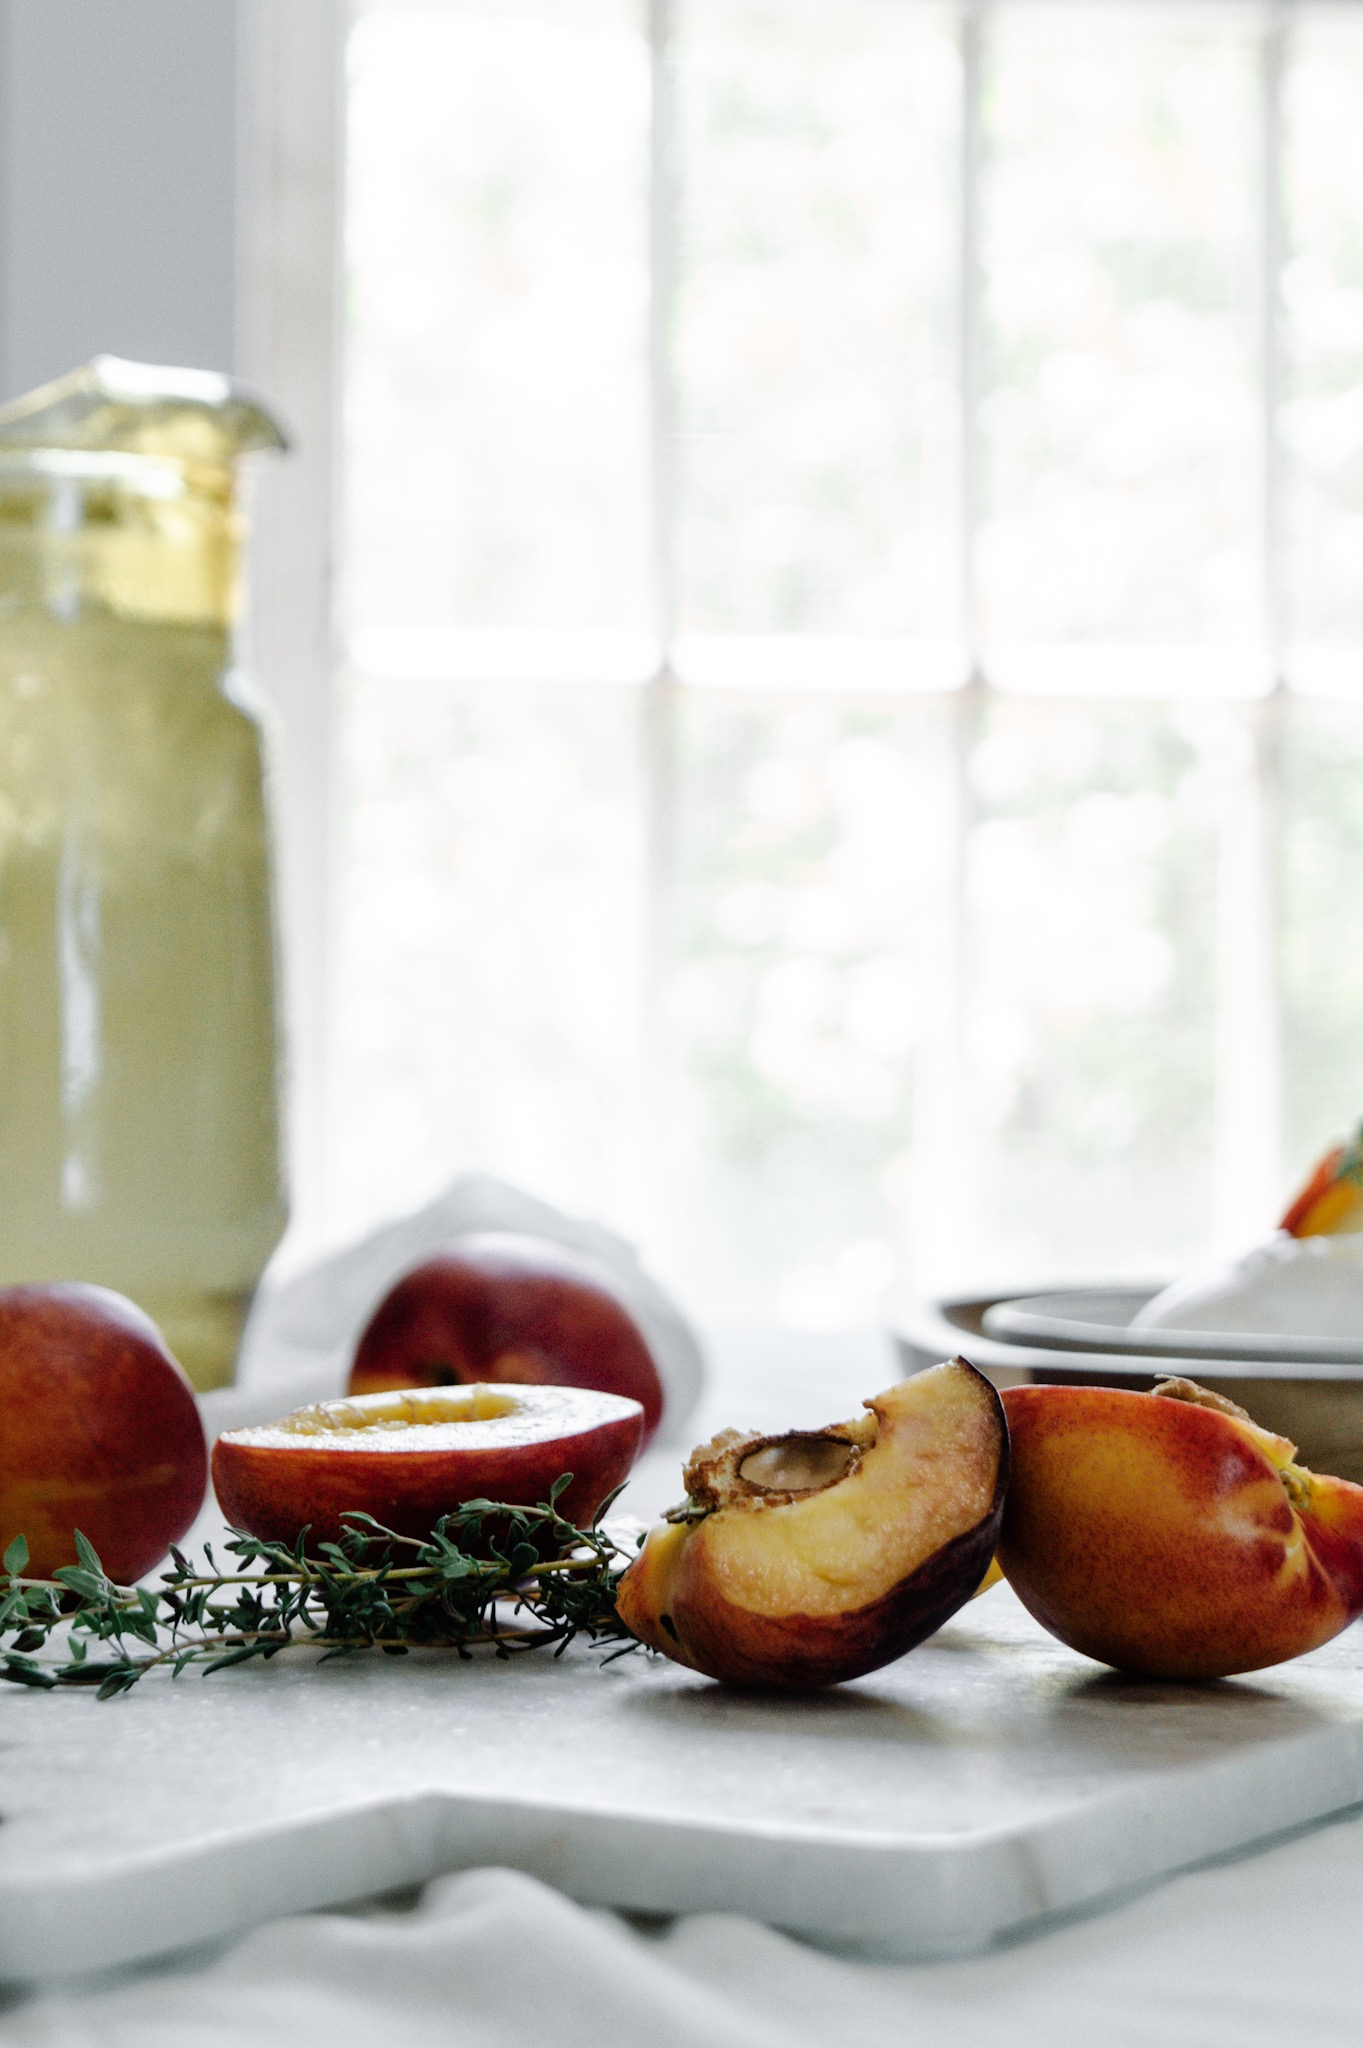 making sweet tea mocktails with juicy summer peaches